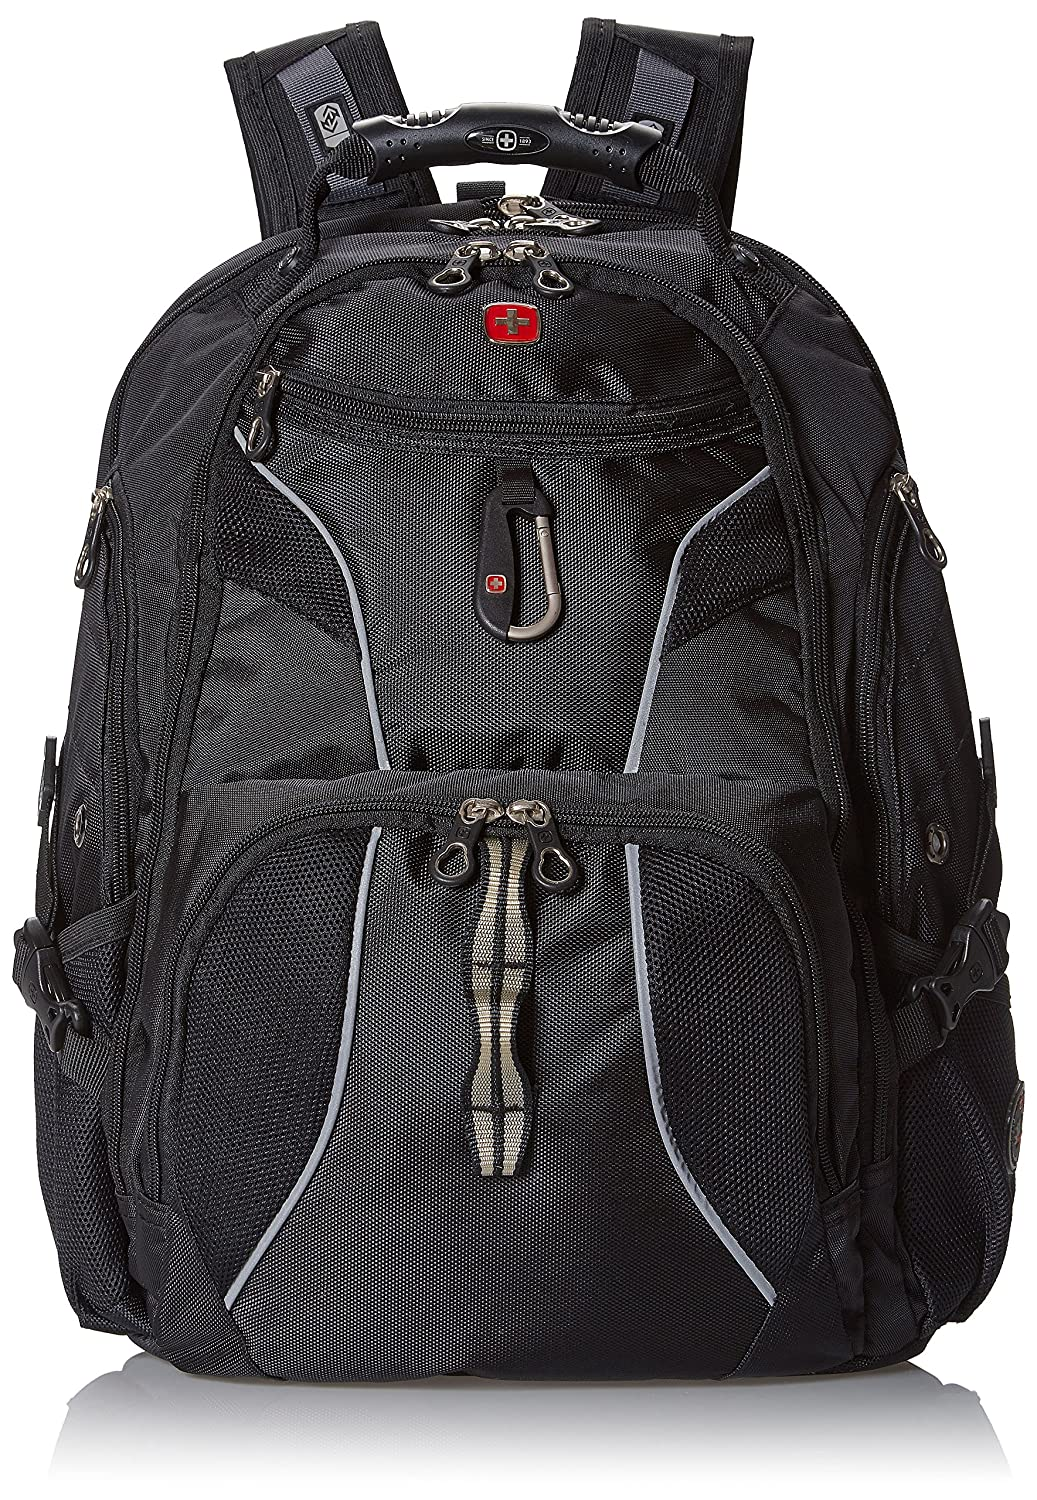 Swiss Gear Backpack Official Site Click Backpacks